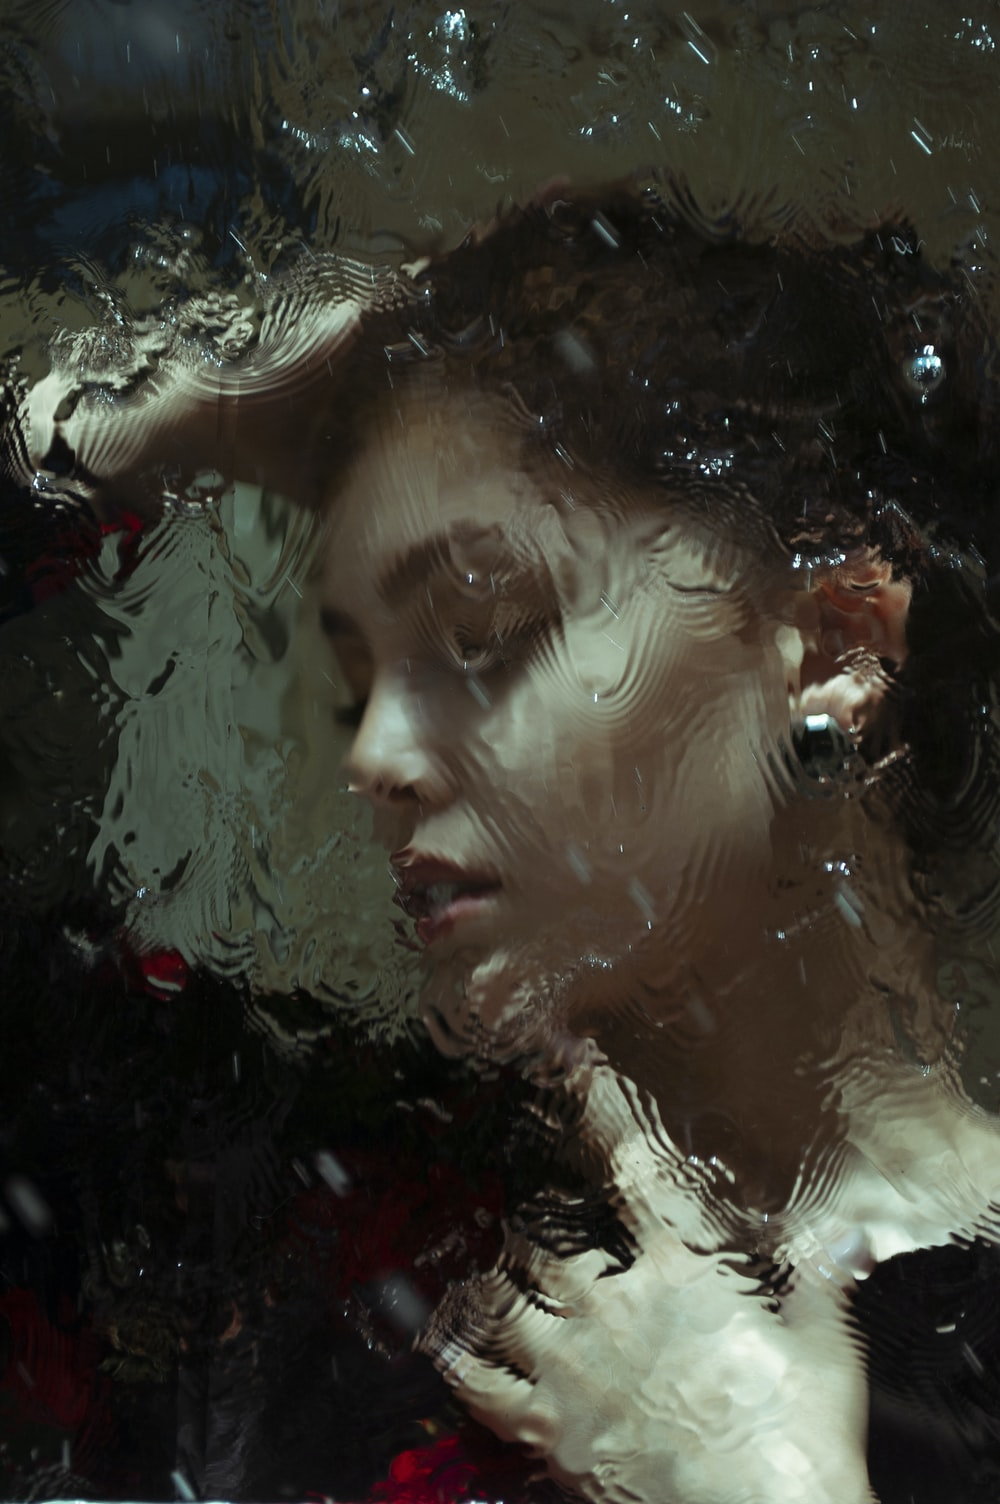 woman in water with water droplets